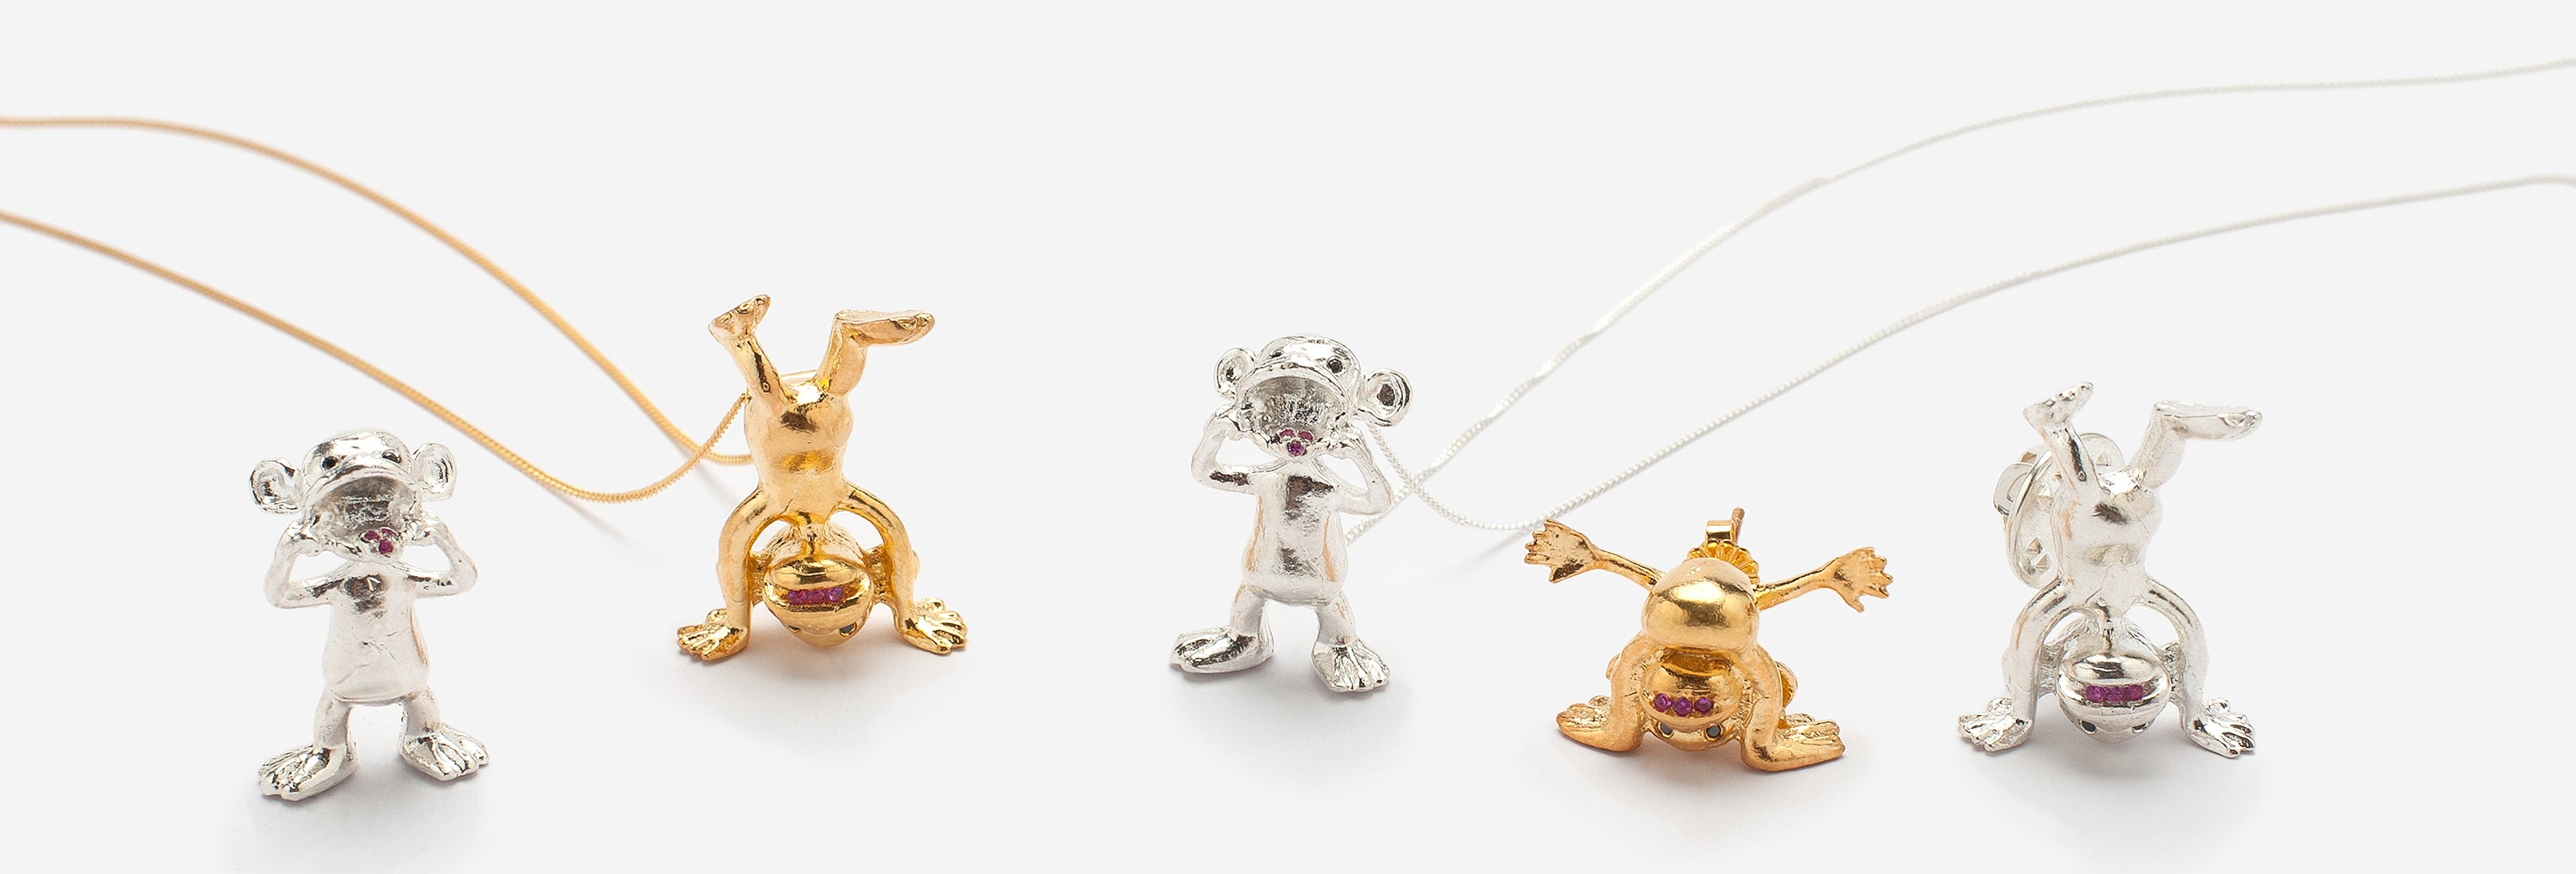 Mirit-Weinstock-Jewellery-Monkey-Collection